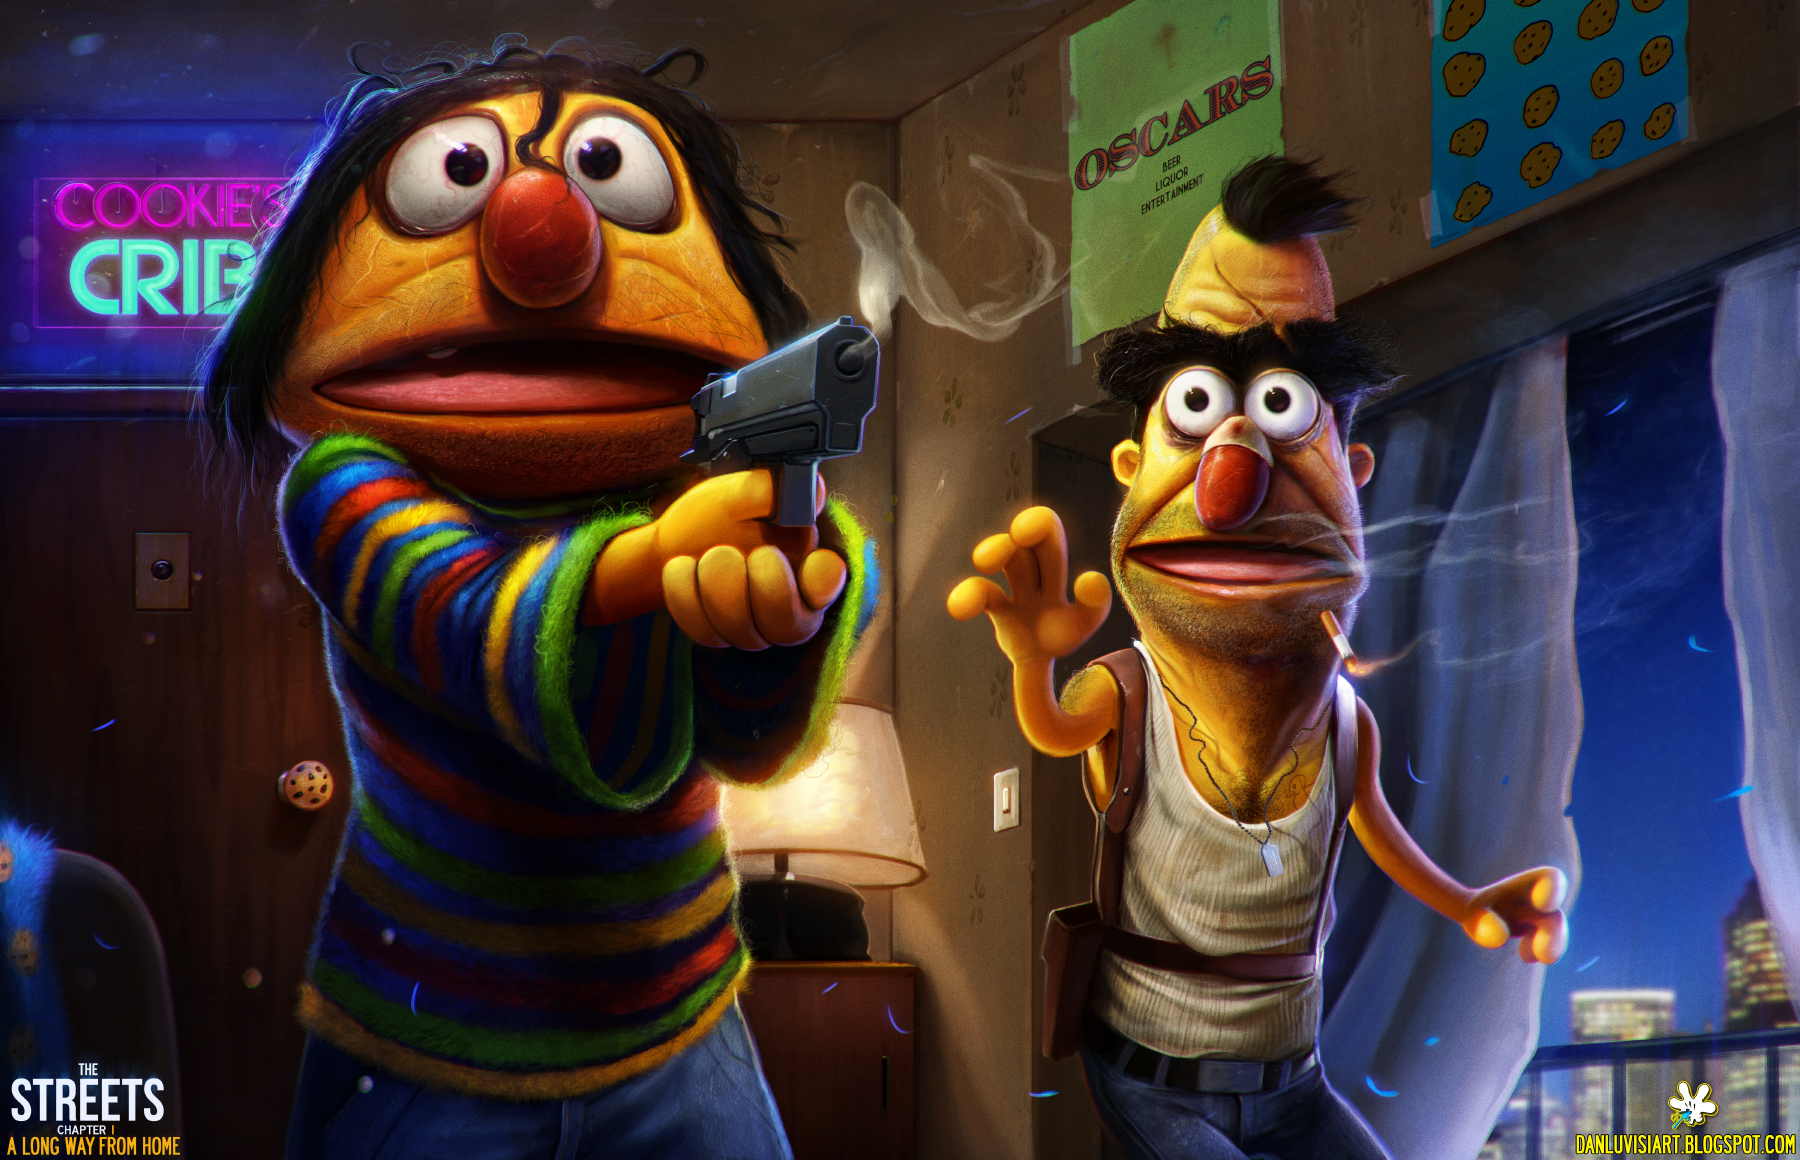 bert-and-ernie-thug-art-the-streets